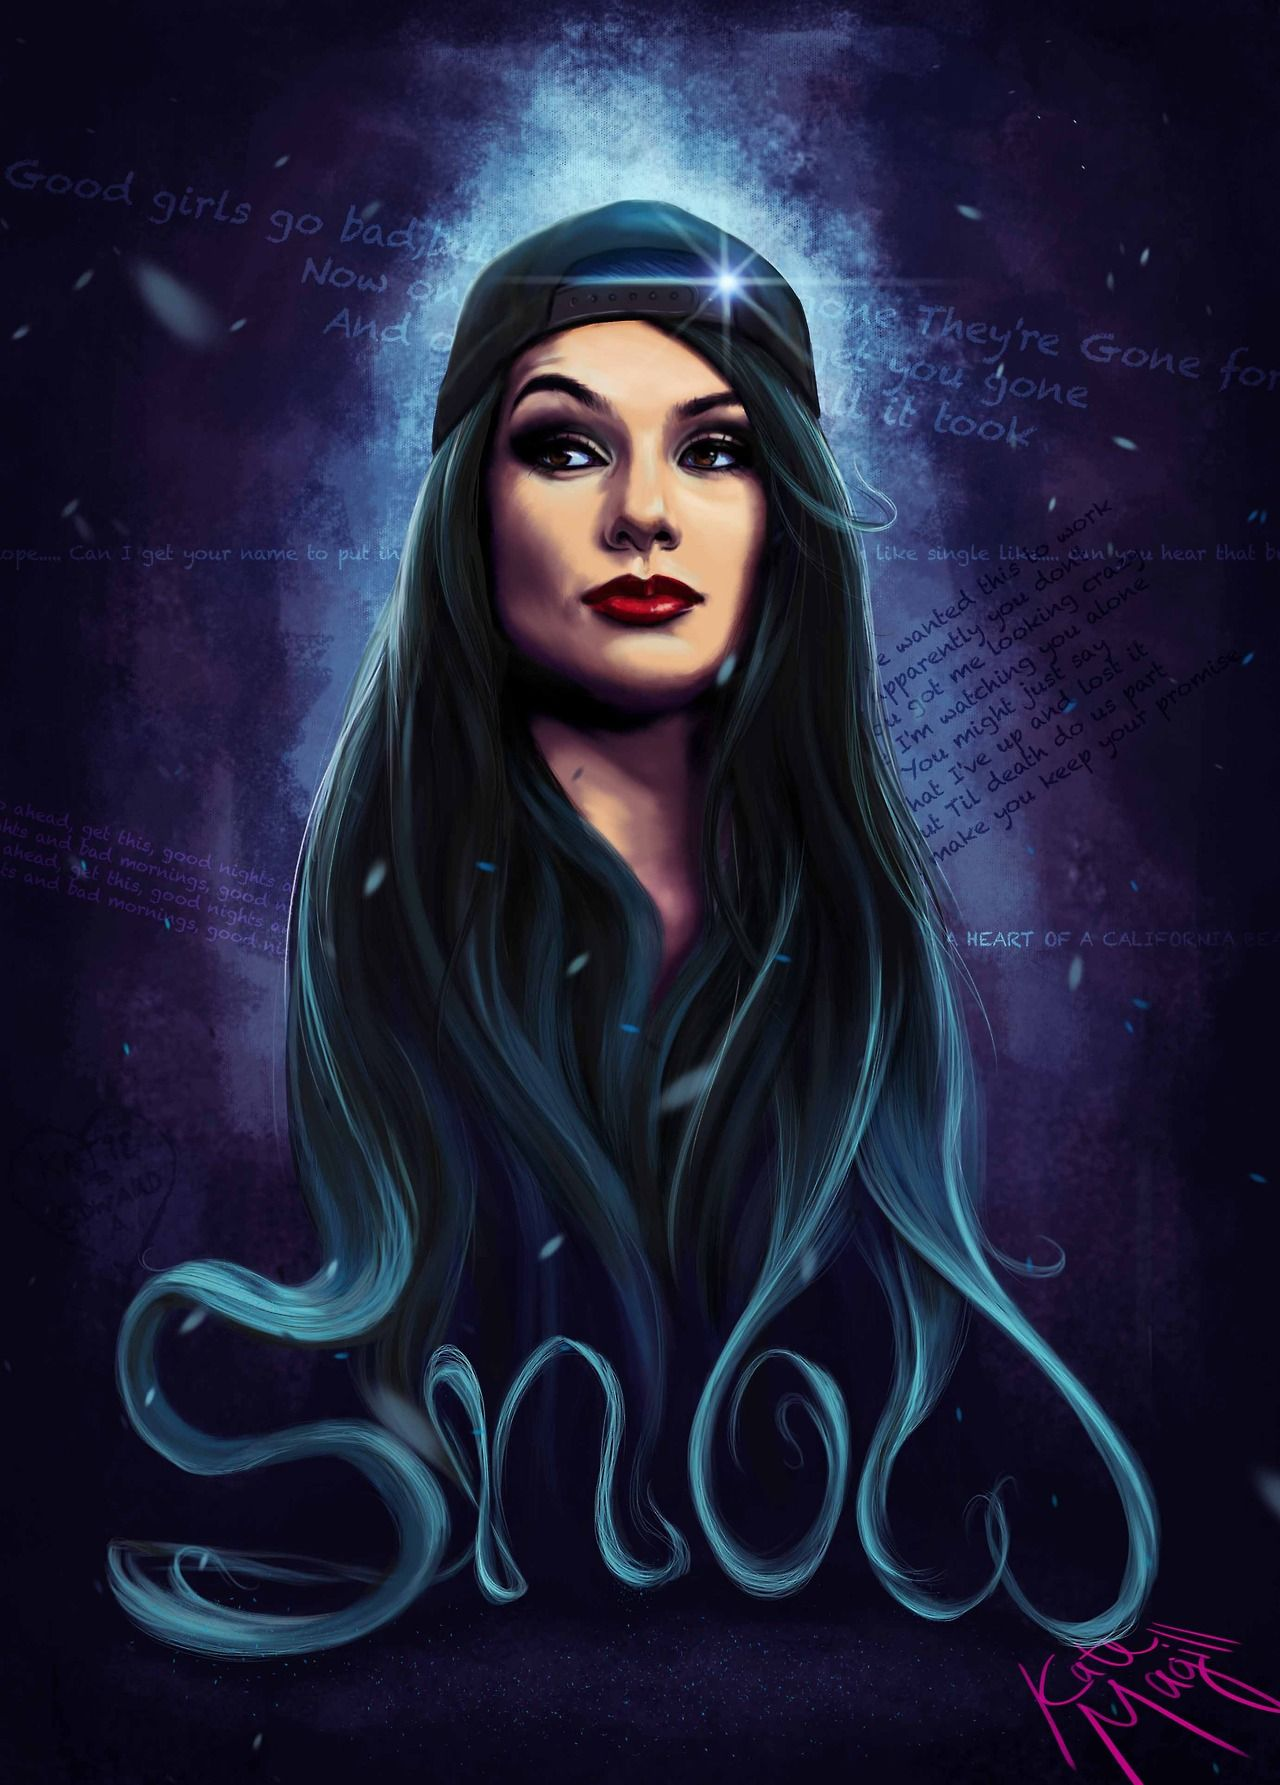 Fan art of Snow Tha Product Digital painting by Kate Magill 1280x1785